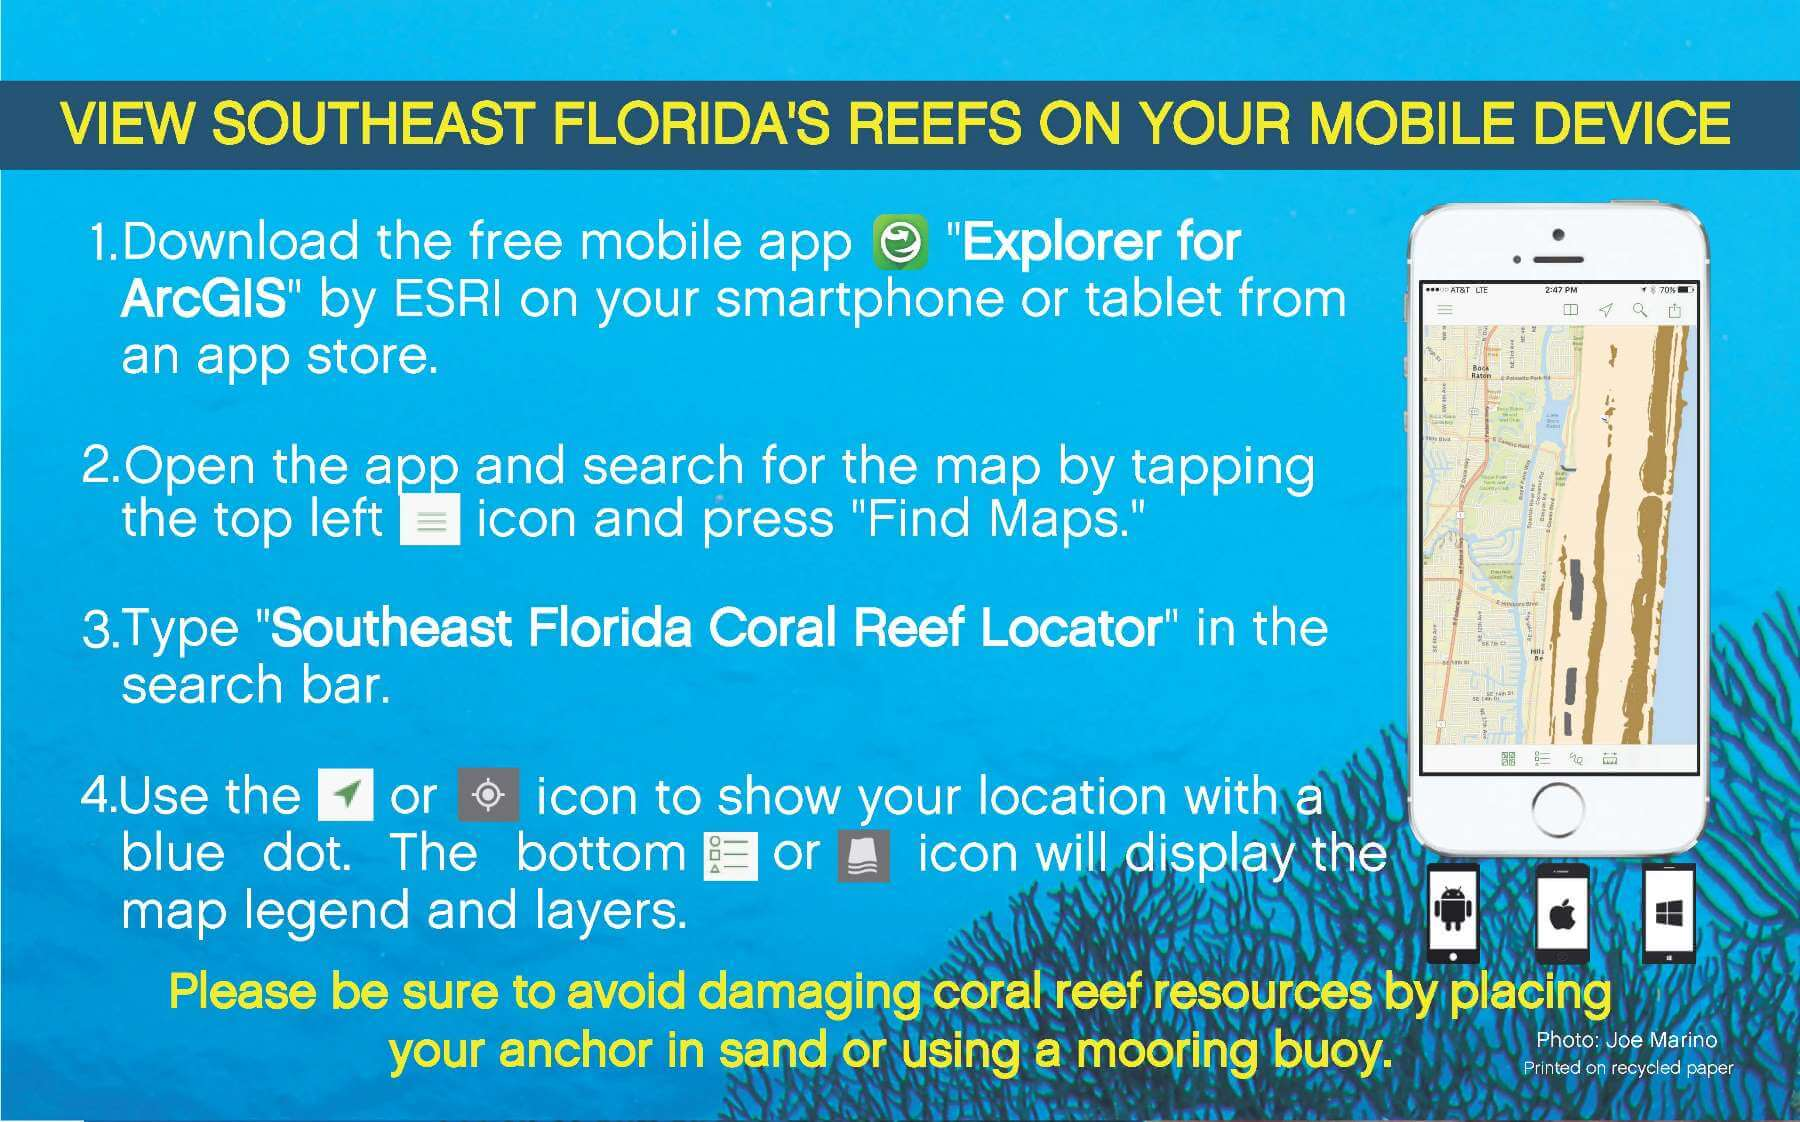 Southeast Florida Map.Southeast Florida Reefs Maps South East Florida Reefs